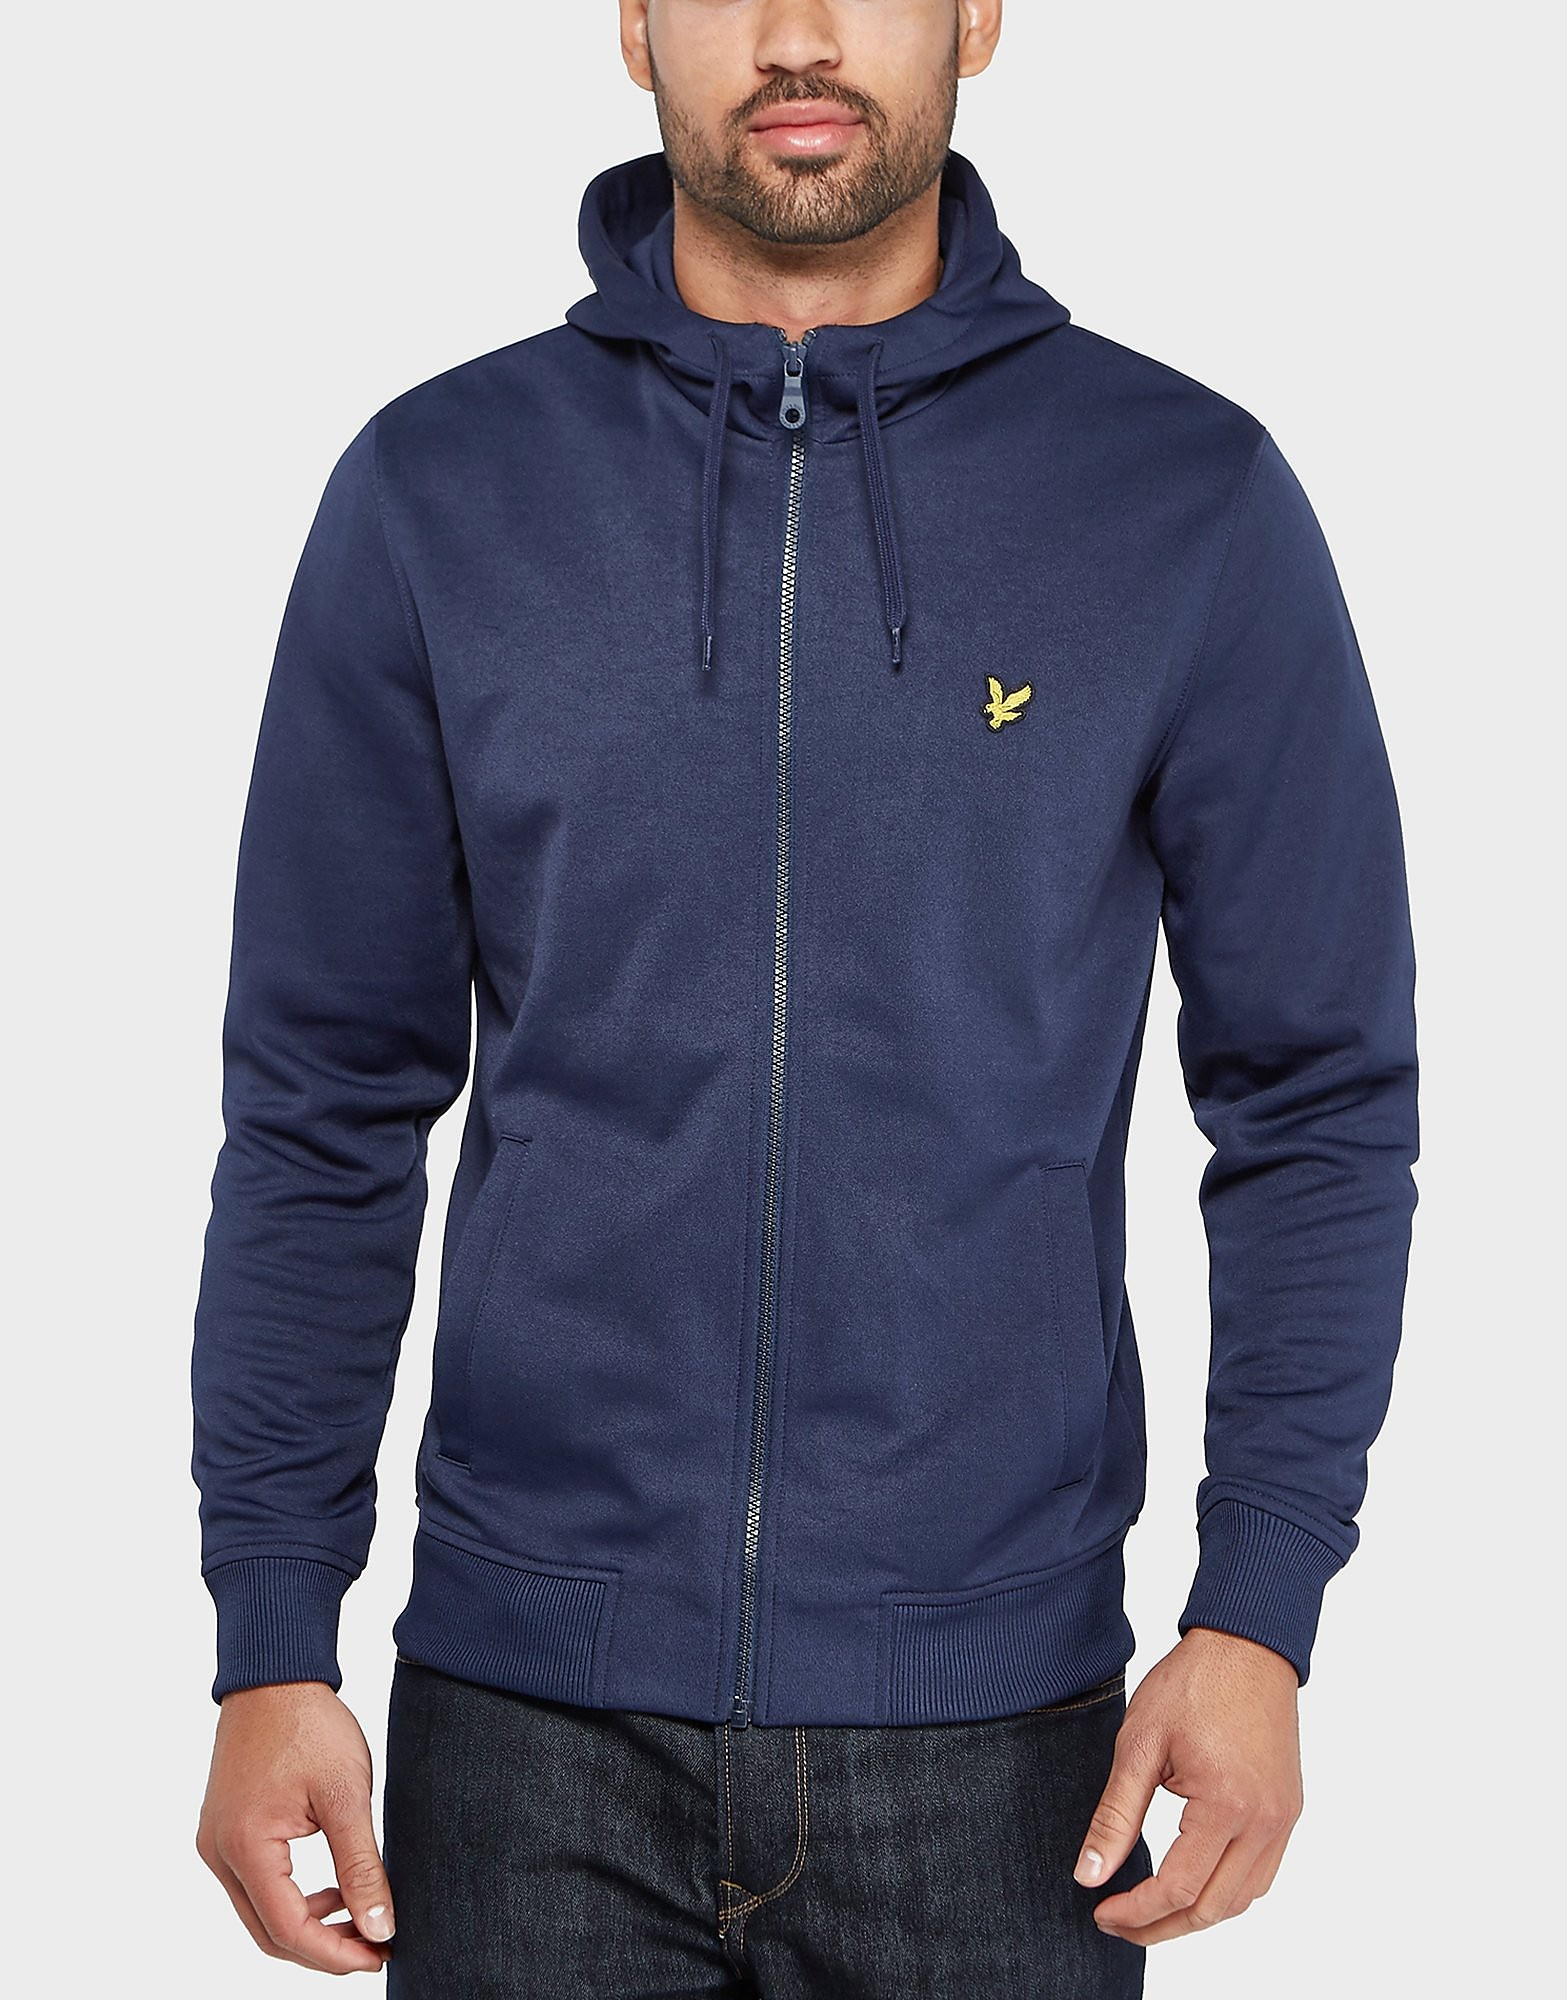 Lyle & Scott Tricot Hooded Track Top